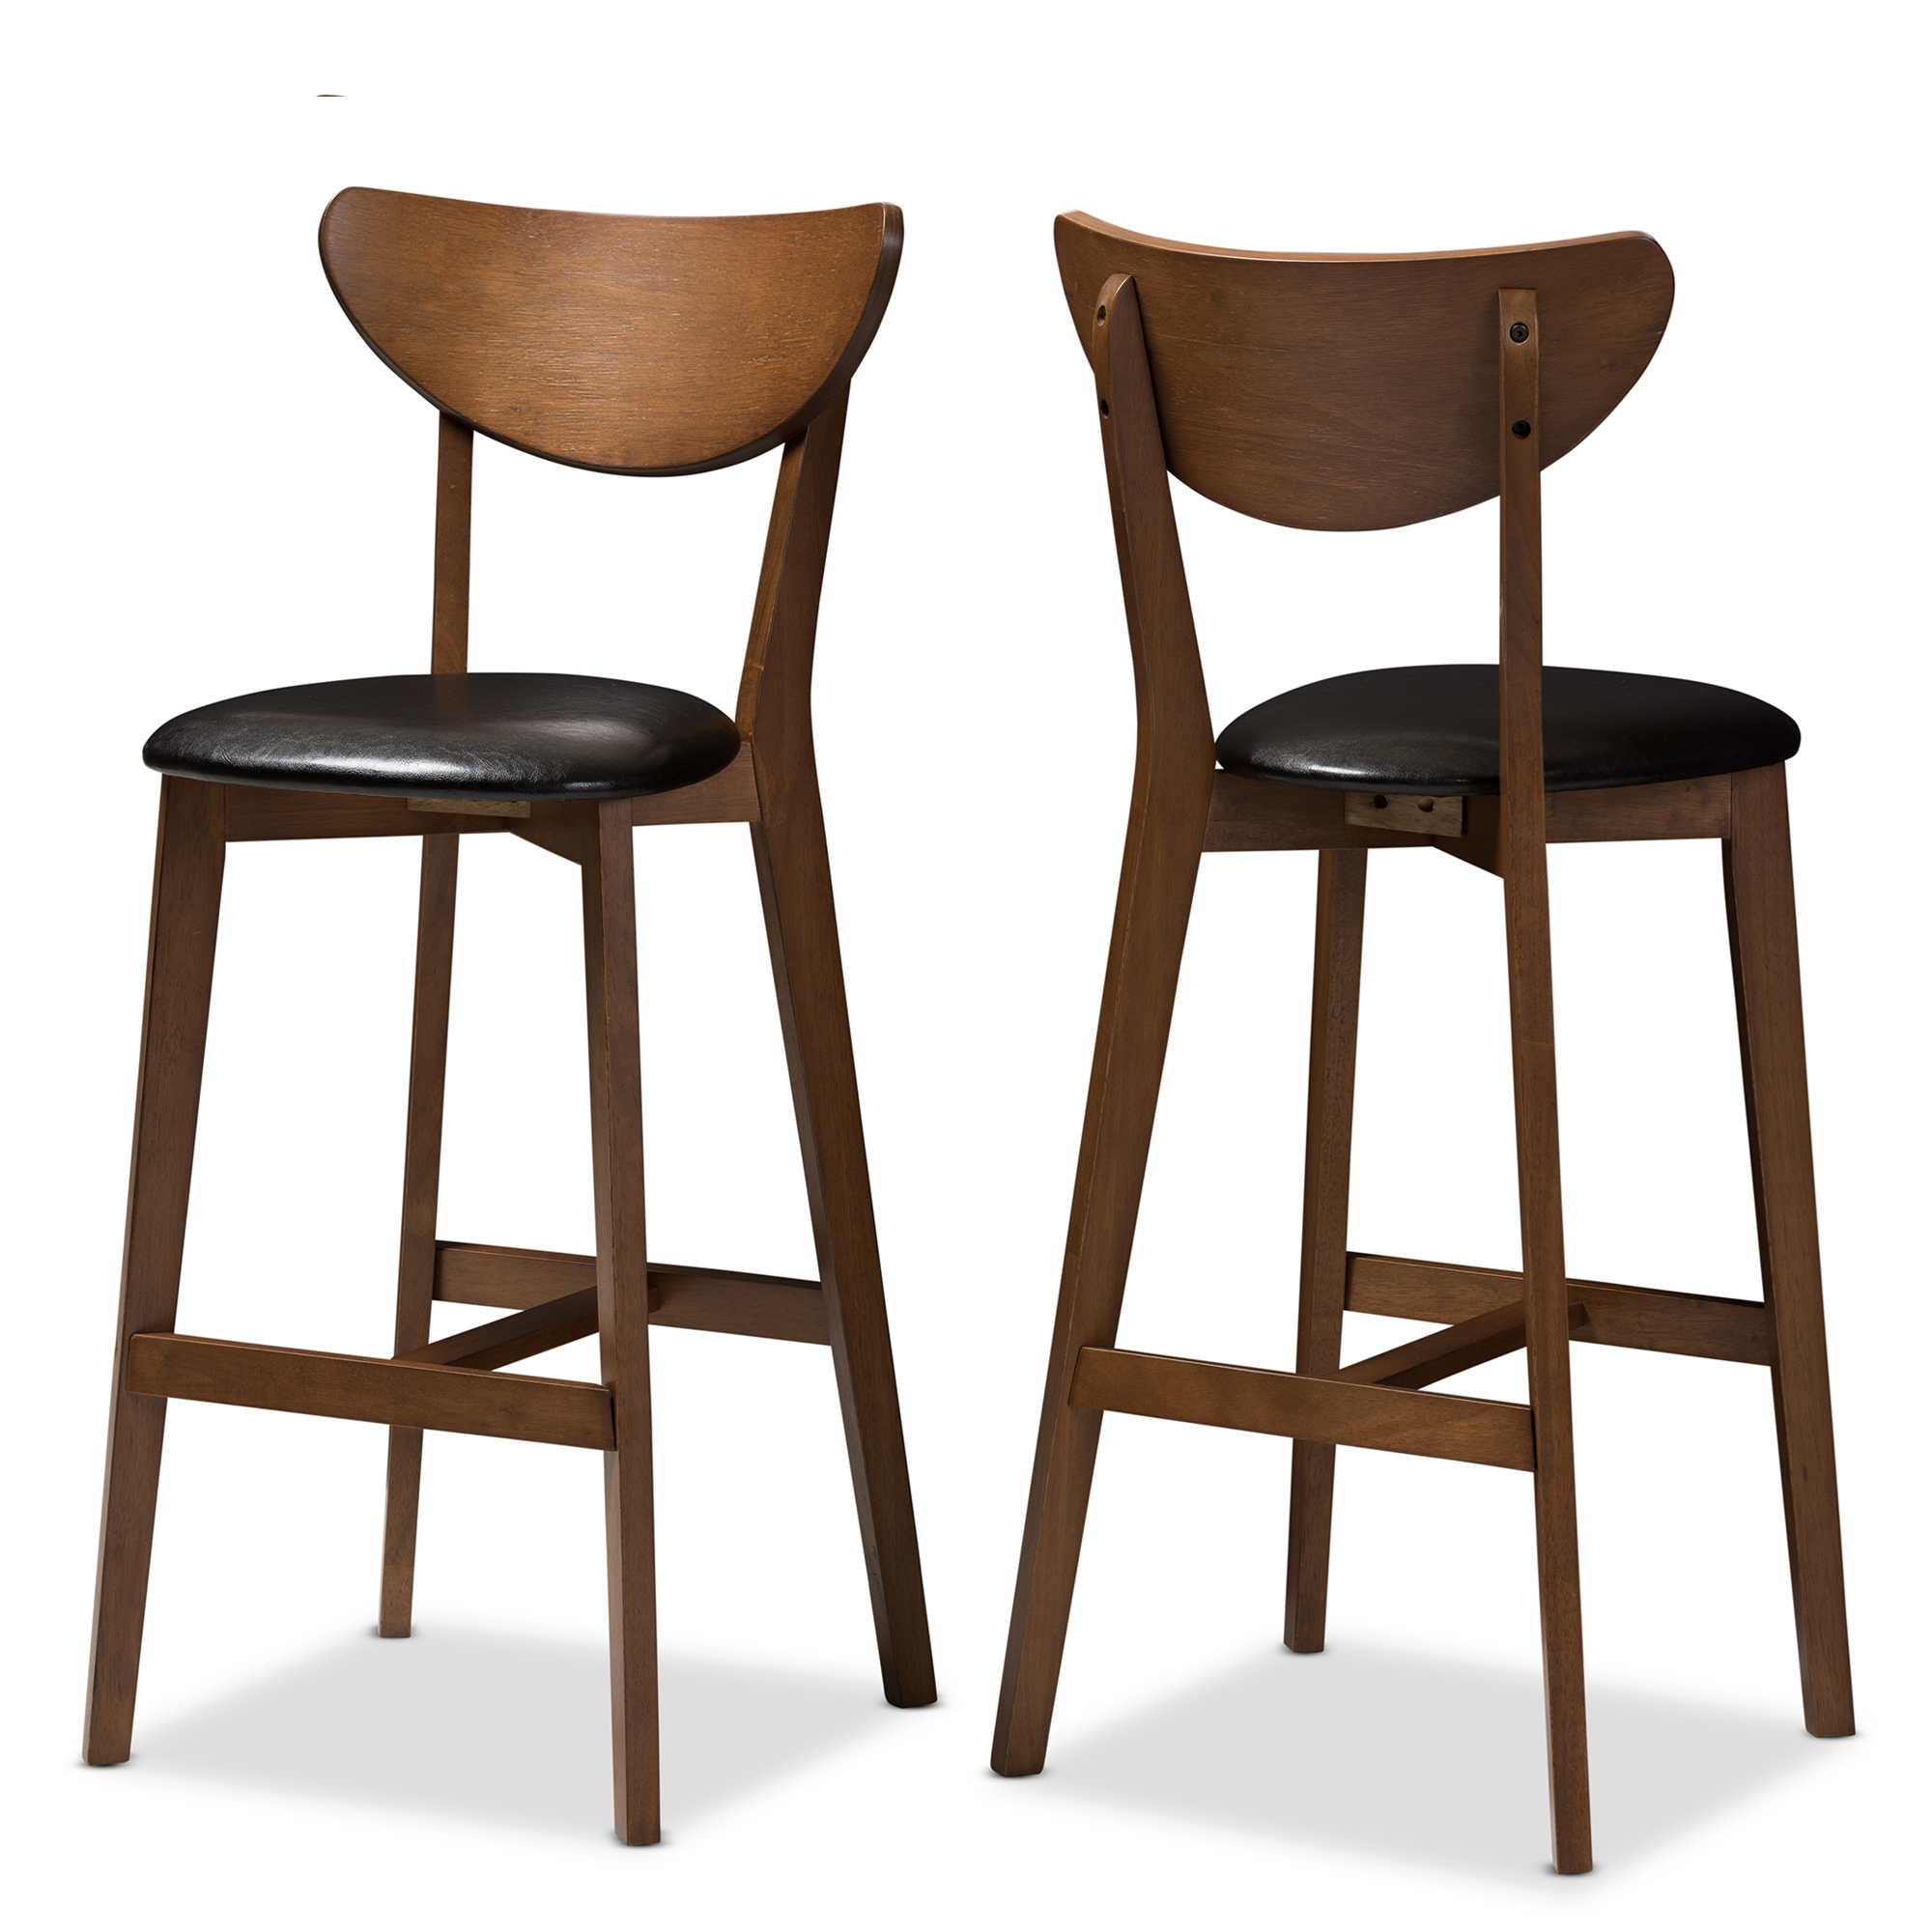 Superbe Baxton Studio Eline Mid Century Modern Black Faux Leather Upholstered  Walnut Finished Bar Stool (